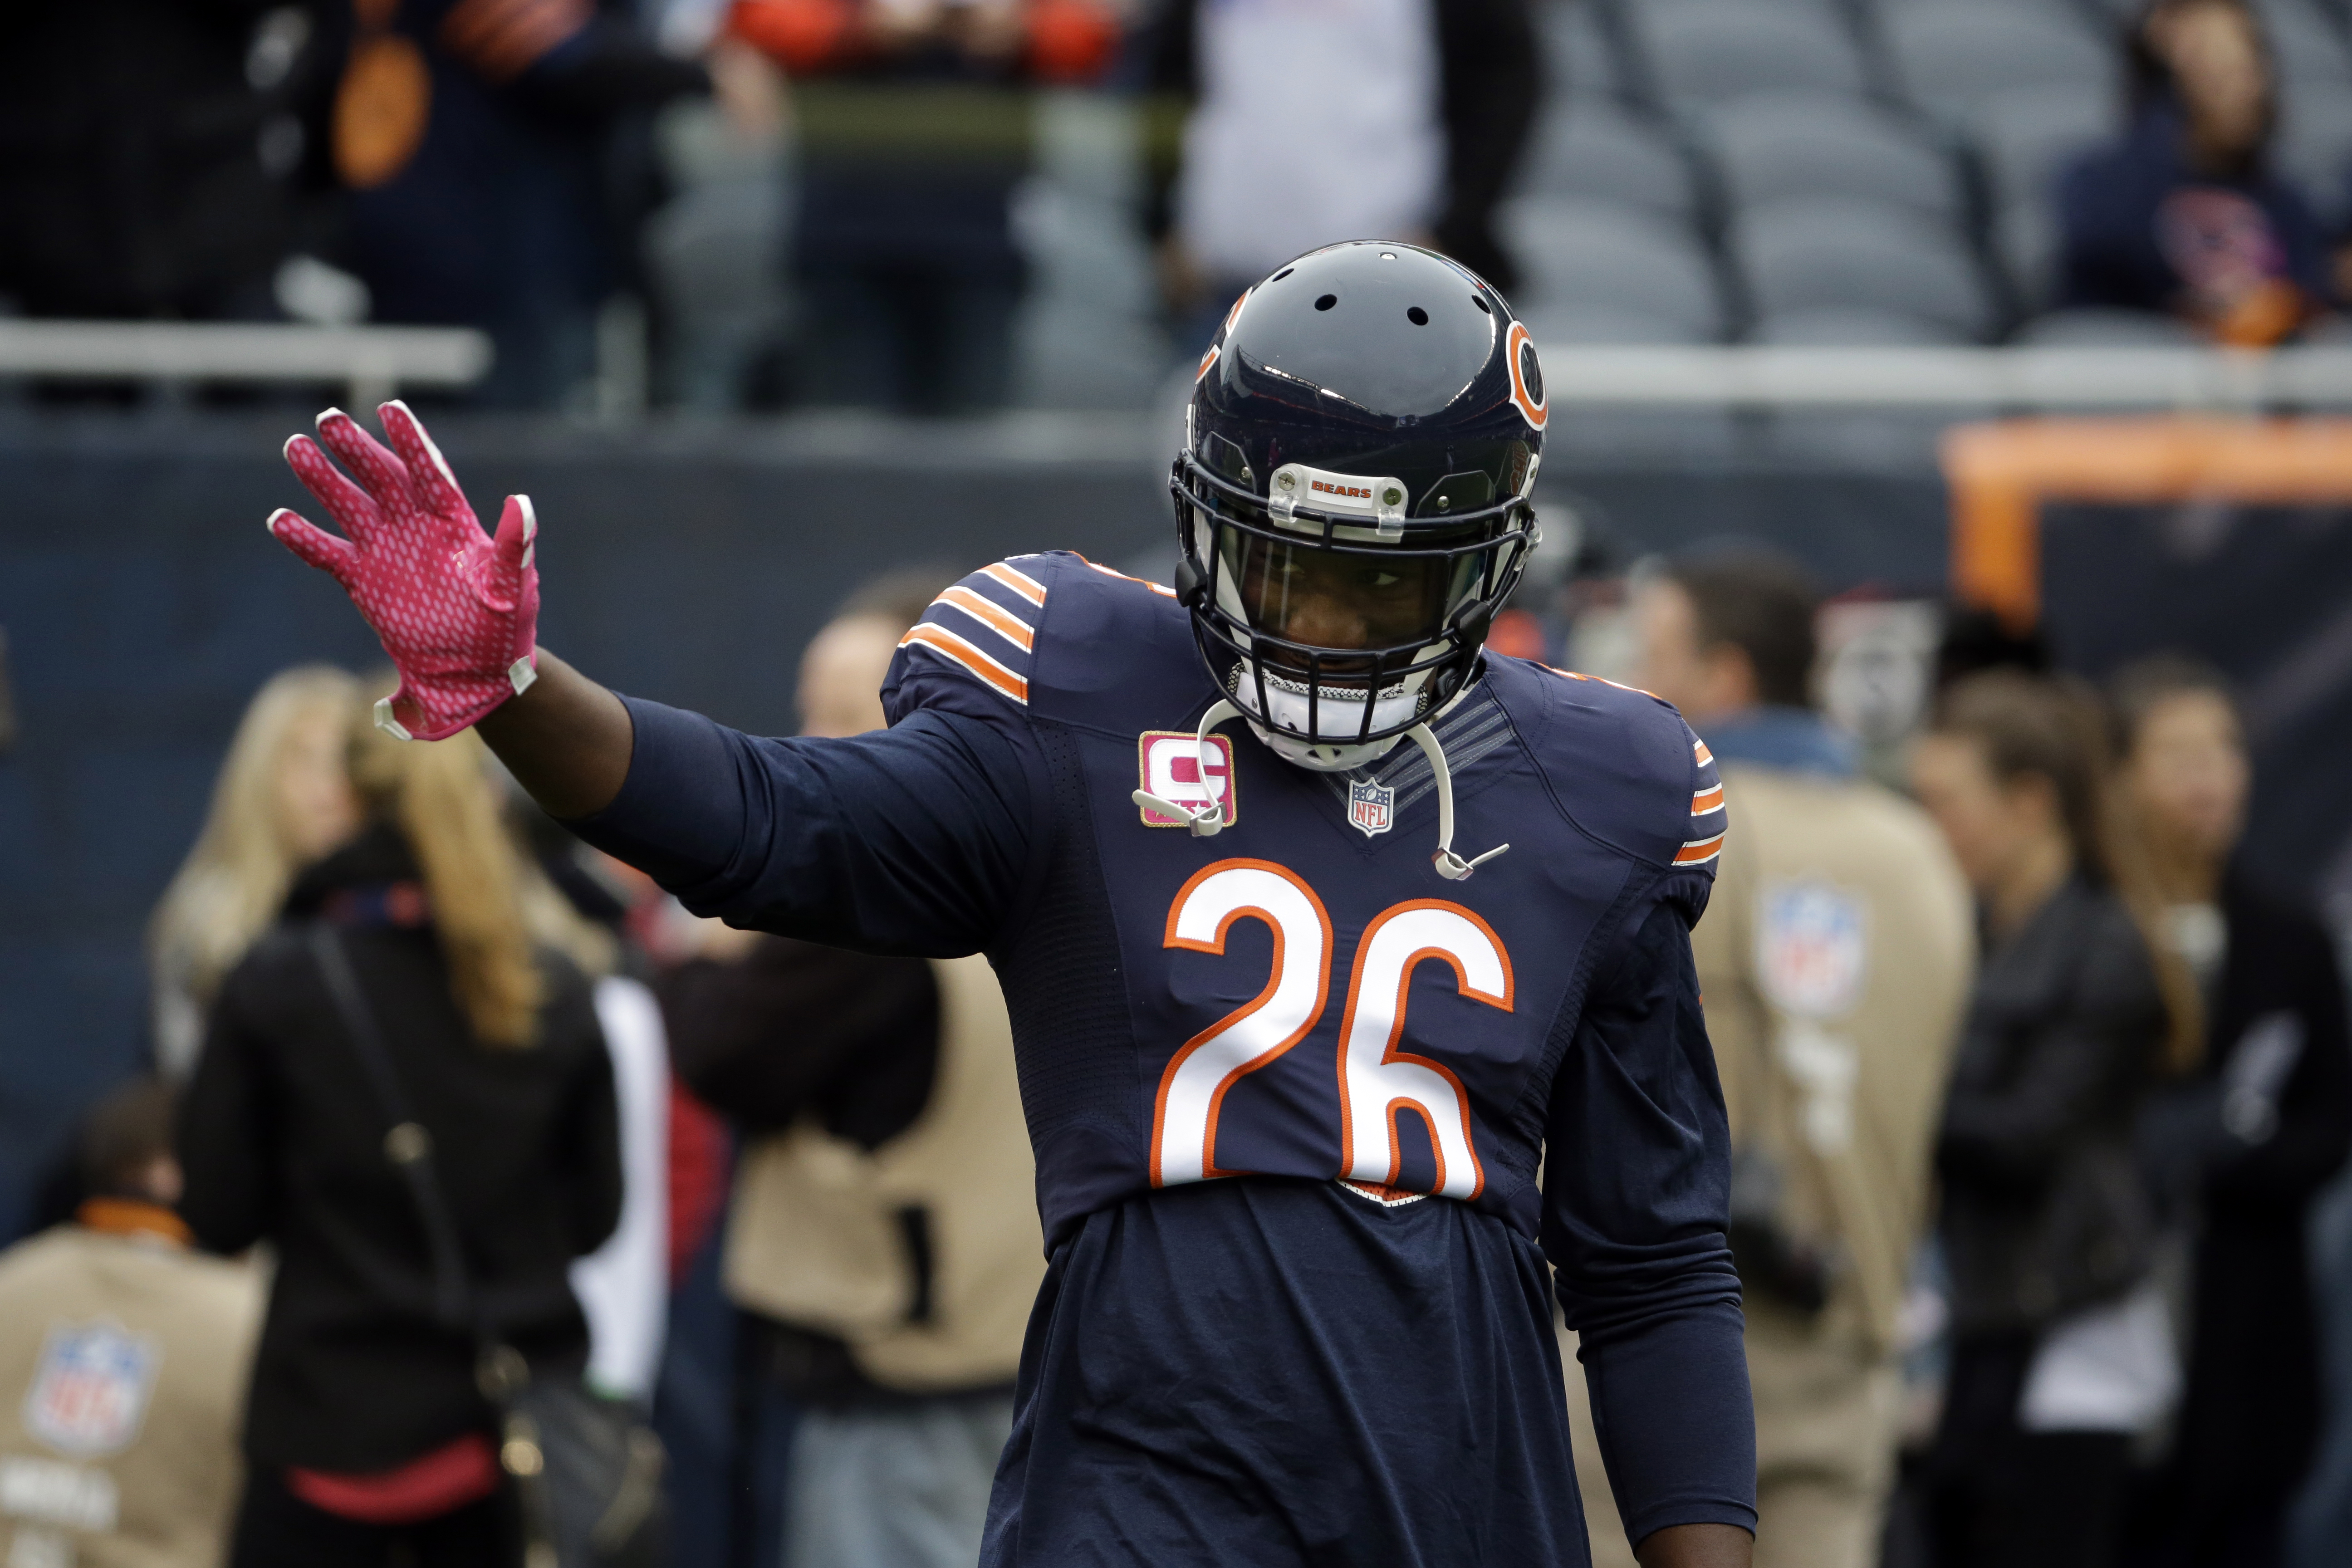 Chicago Bears strong safety Antrel Rolle (26) warms up before an NFL football game against the Oakland Raiders, Sunday, Oct. 4, 2015, in Chicago. (AP Photo/Nam Y. Huh)